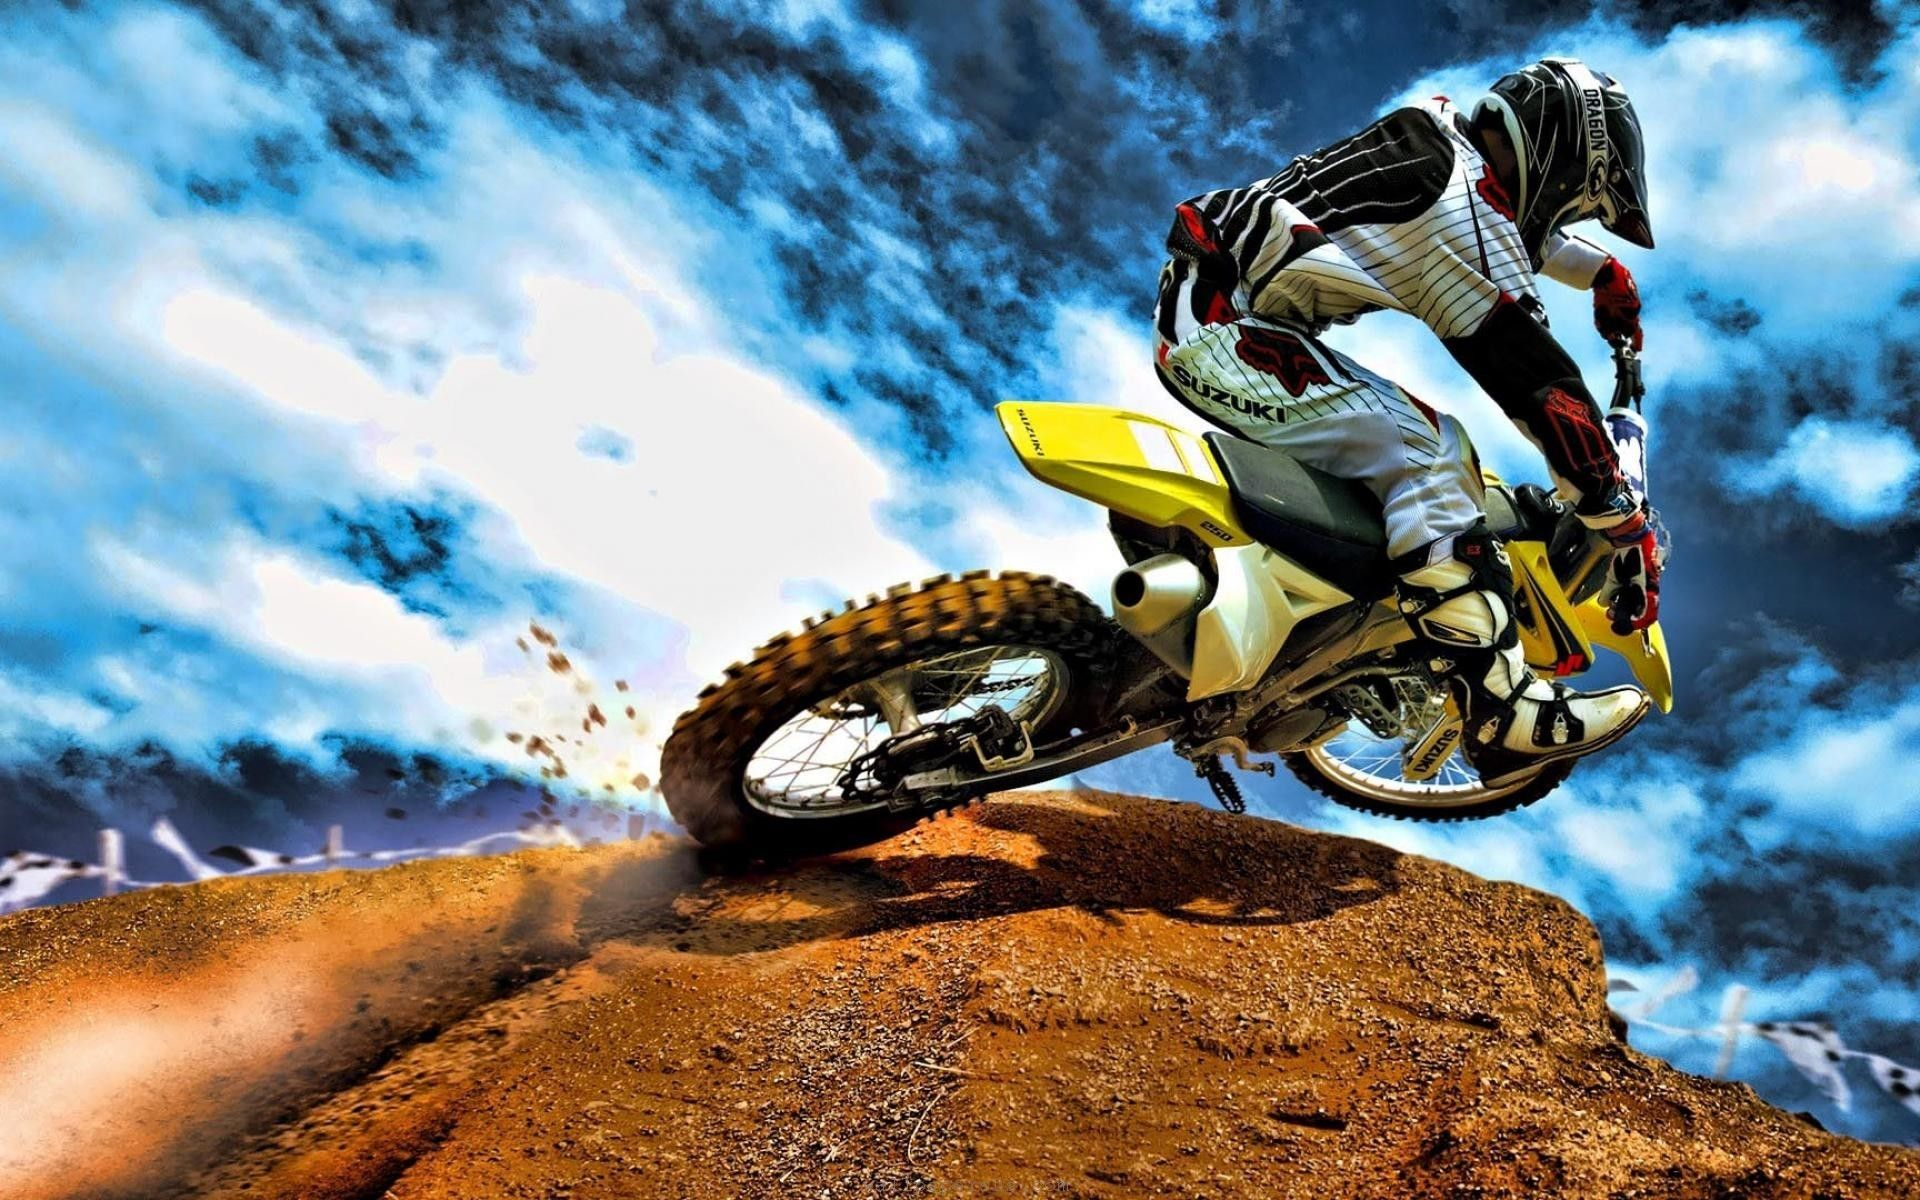 bike, photography, motocross, HDR, photography, offroad